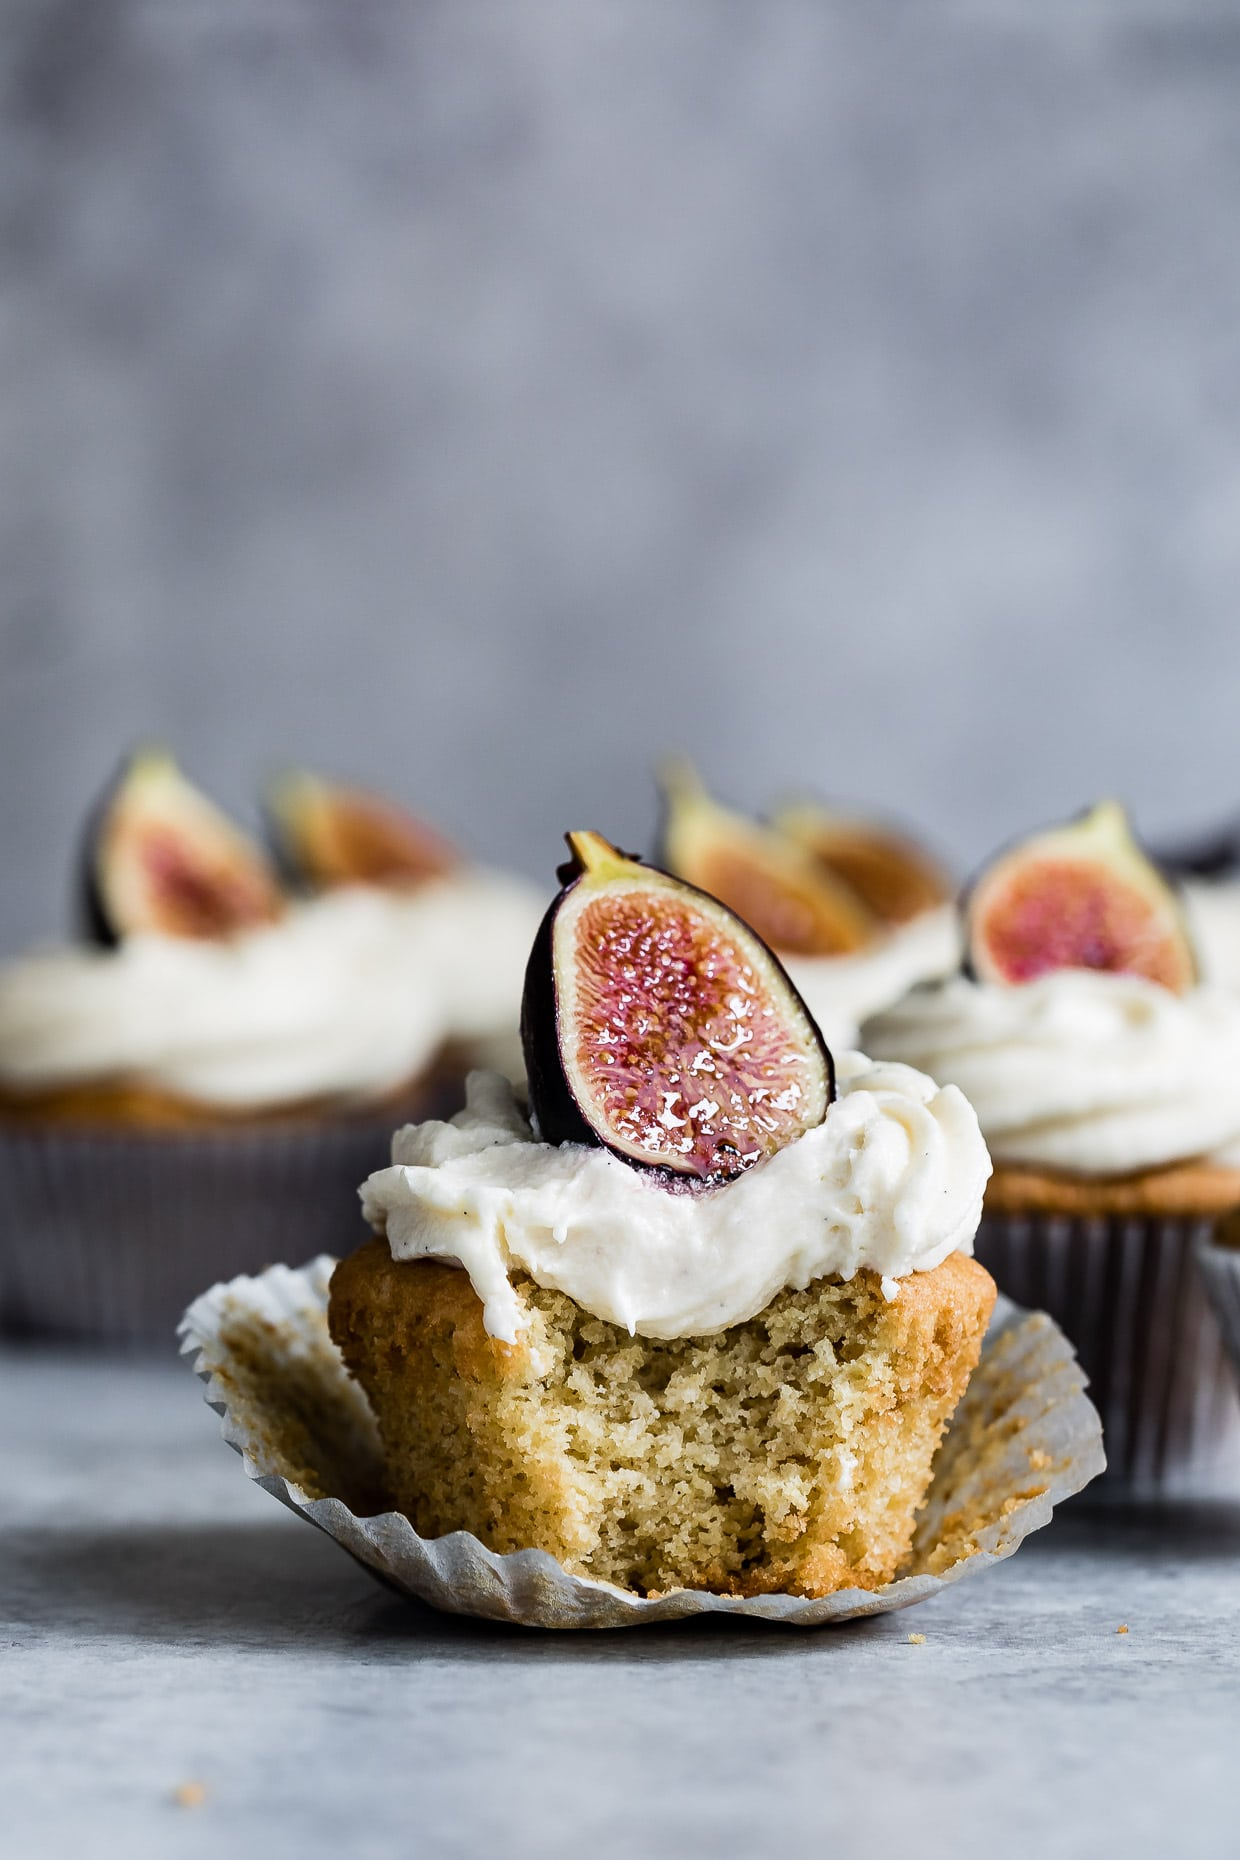 Vanilla cupcakes with goat cheese frosting and figs